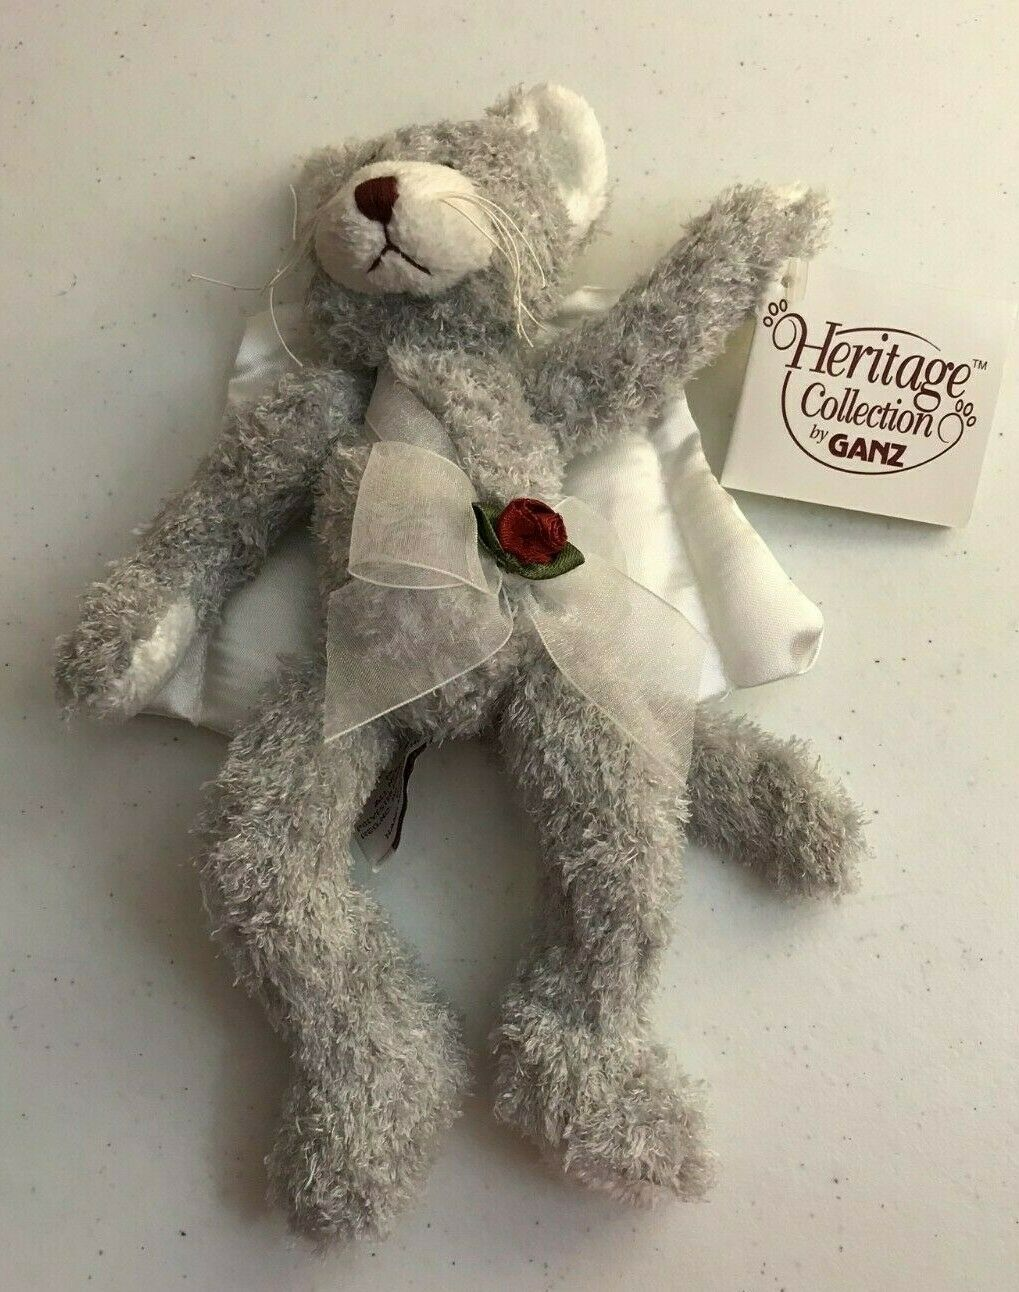 Scarce GANZ Heritage Collection PURRFECT CUPID Kitten Silver Gray Cat Plush SOFT image 3